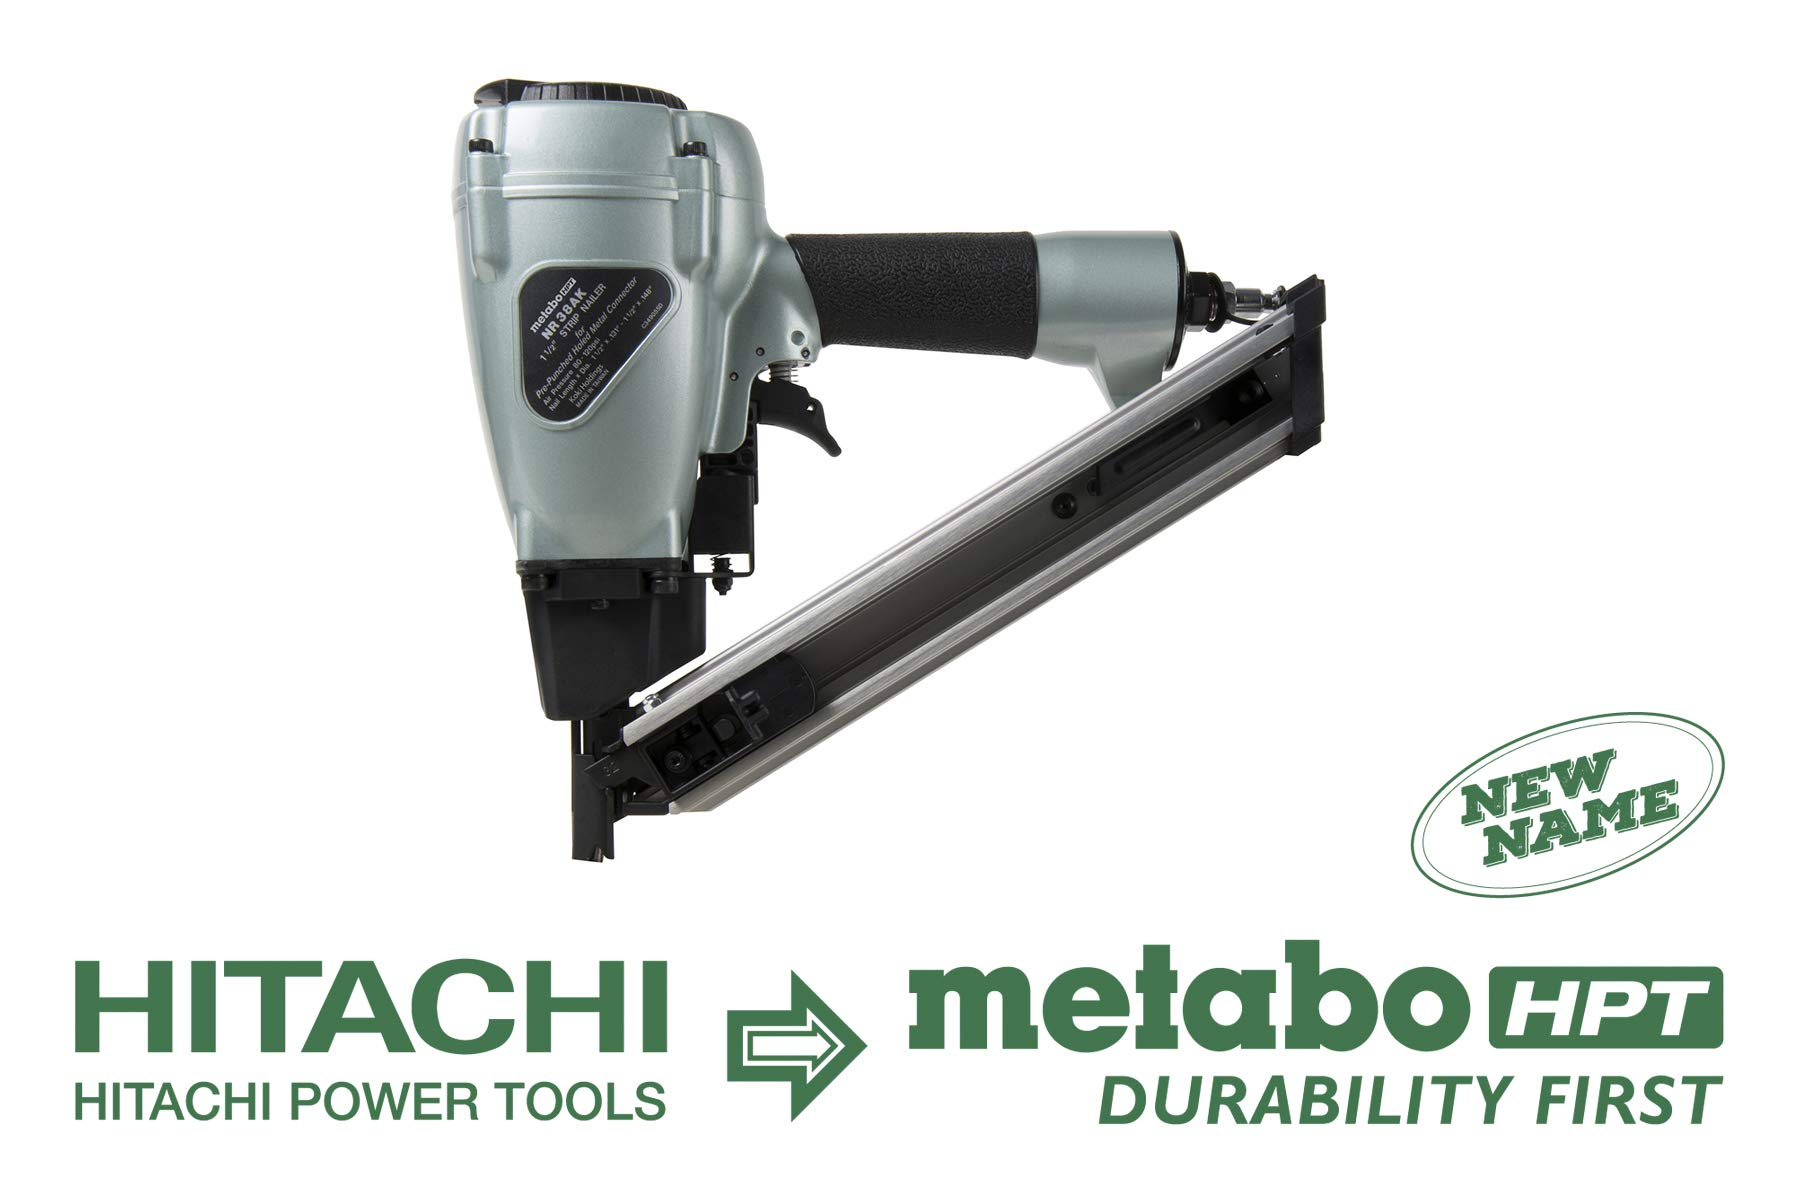 Metabo HPT NR38AK Positive Placement Metal Connector Pneumatic Nailer, Strap-Tite Fastening System, Accepts 1-1/2-Inch Nails, For Fastening Various Types of Pre-punched Hole Metal Connectors to Wood